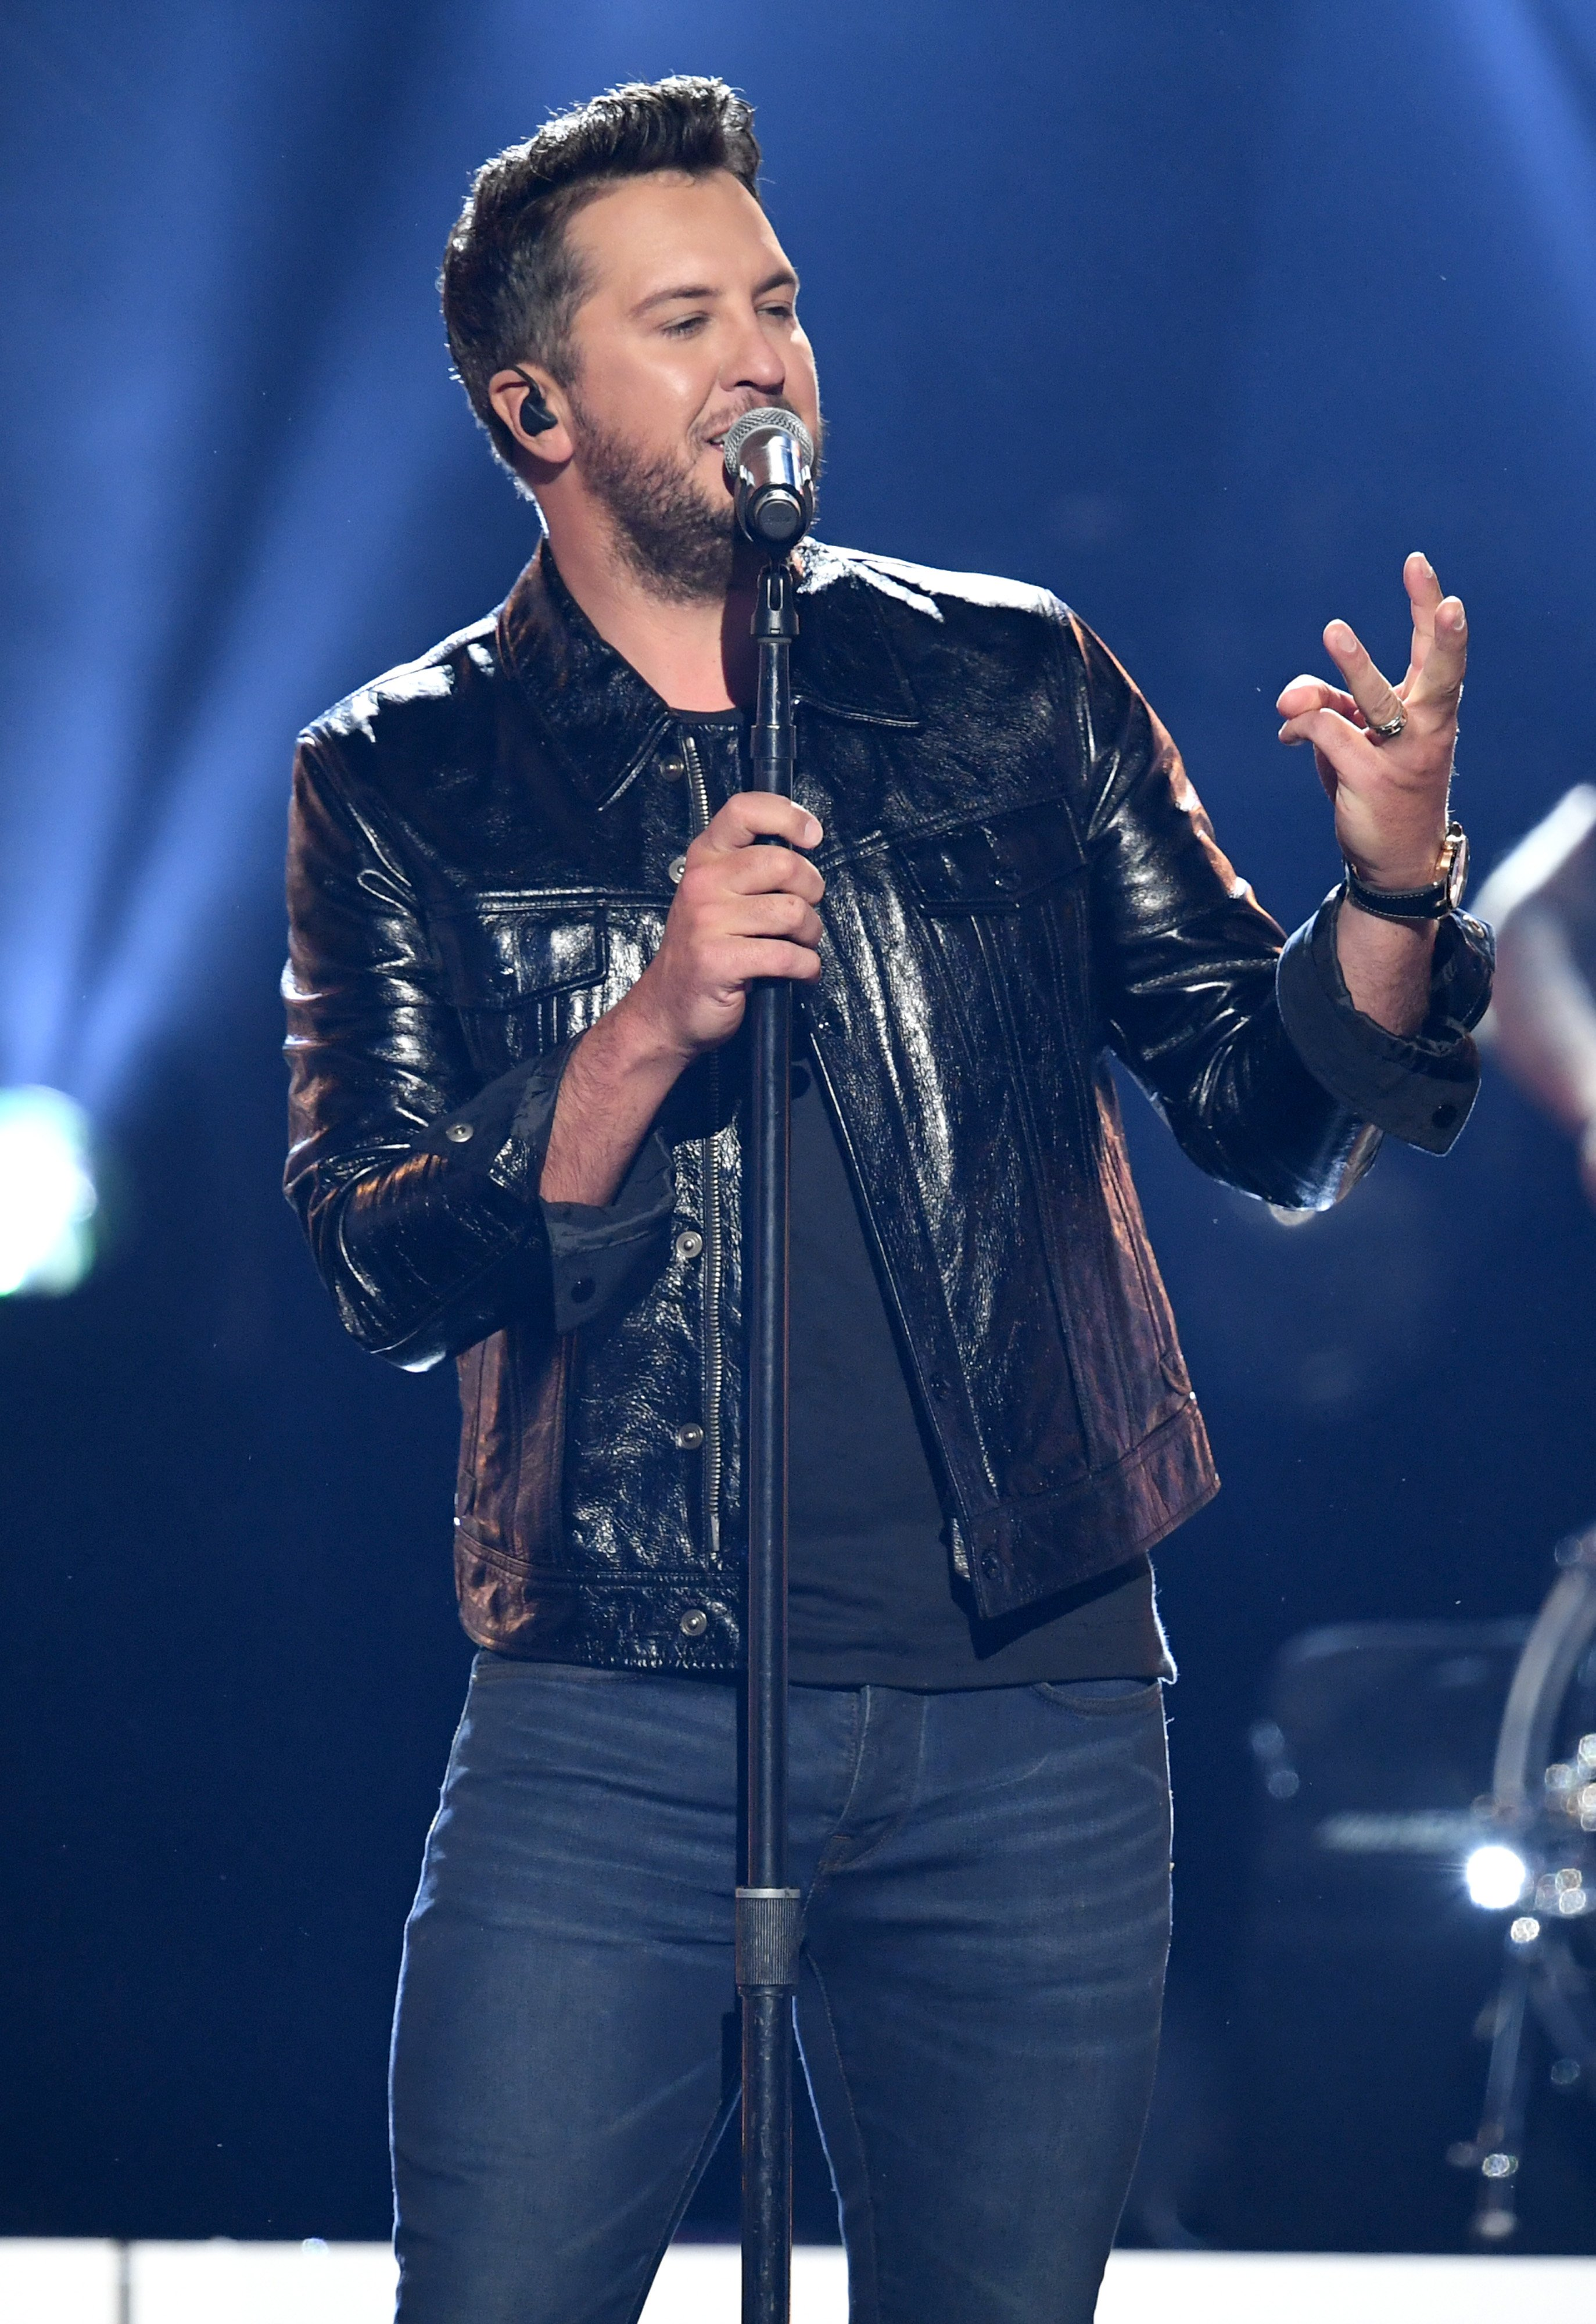 """""""American Idol"""" judge Luke Bryan has been one of the most successful country artist in the music industry. 